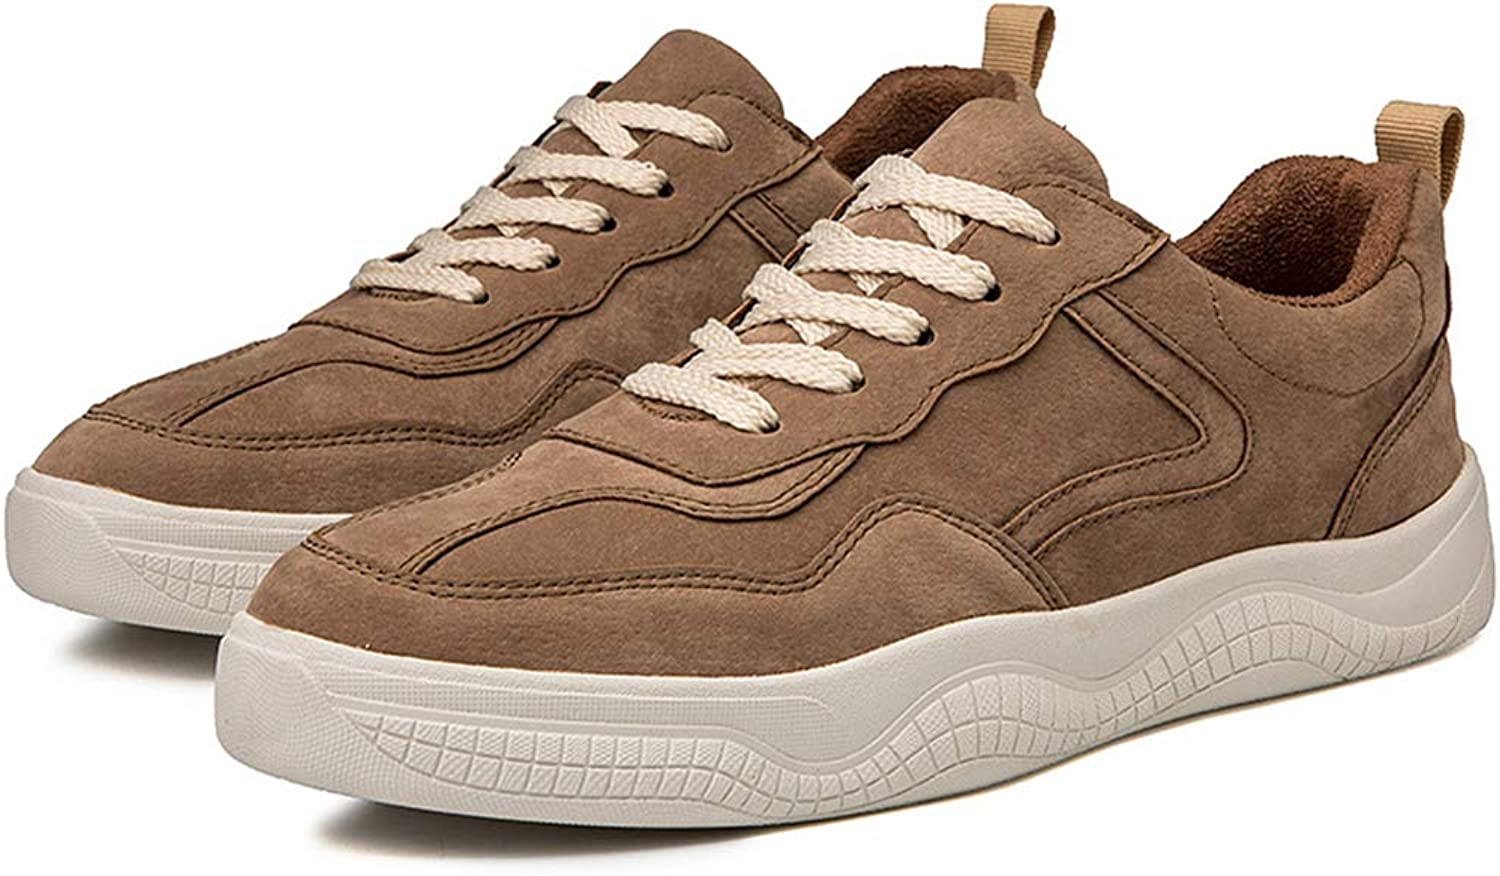 Men's shoes Spring Fall Classic Platform shoes Leisure Academy Lace Up Deck shoes PU Sports shoes Athletic shoes,Brown,43